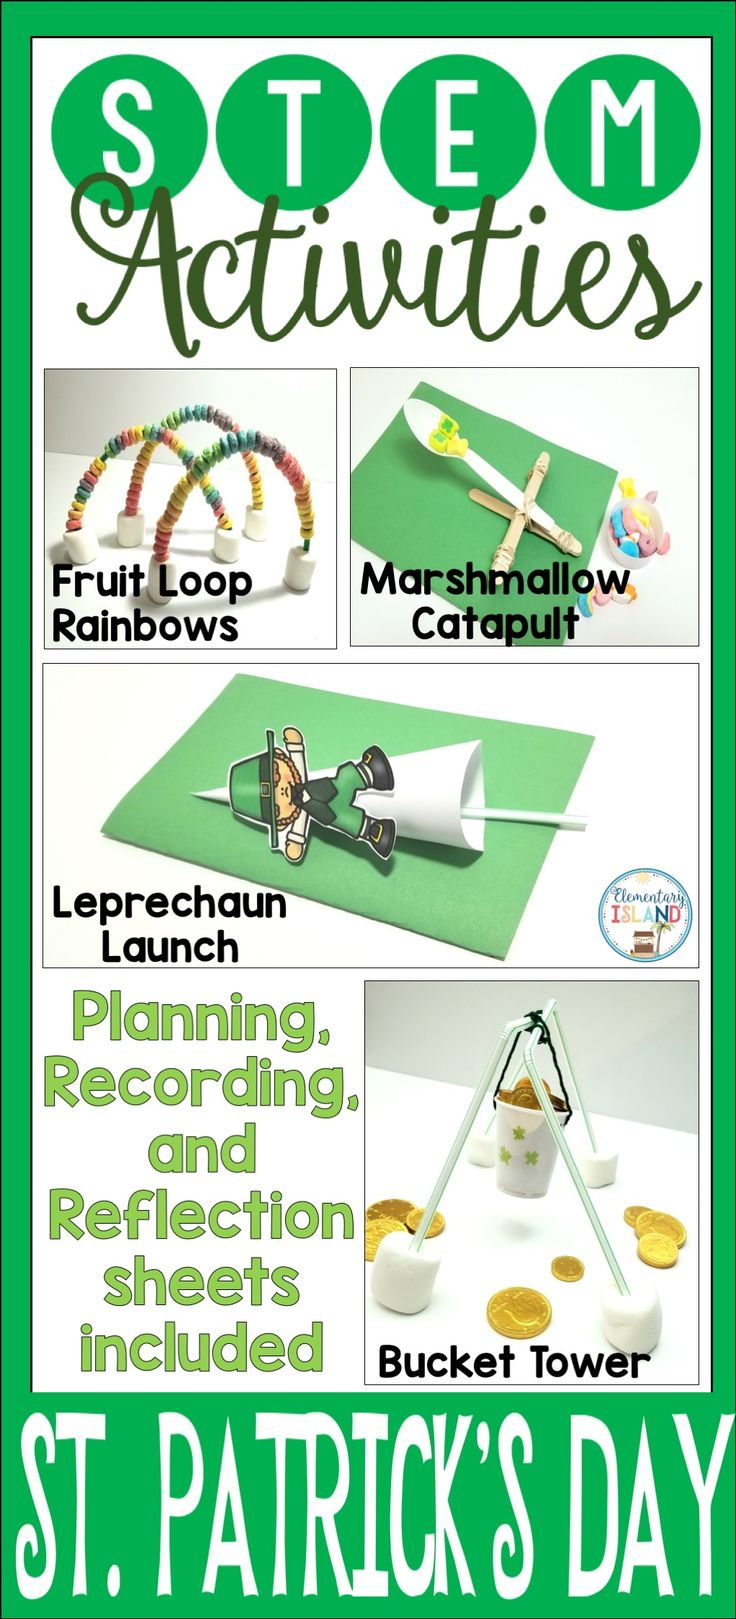 St. Patrick's Day STEM activities for kids are so fun.  Students will love the activities and challenges to help the leprechaun.  There are 4 ideas included in this product to choose from.  Celebrate St. Patty's day with projects students will enjoy instead of printables.  Your students will thank you!